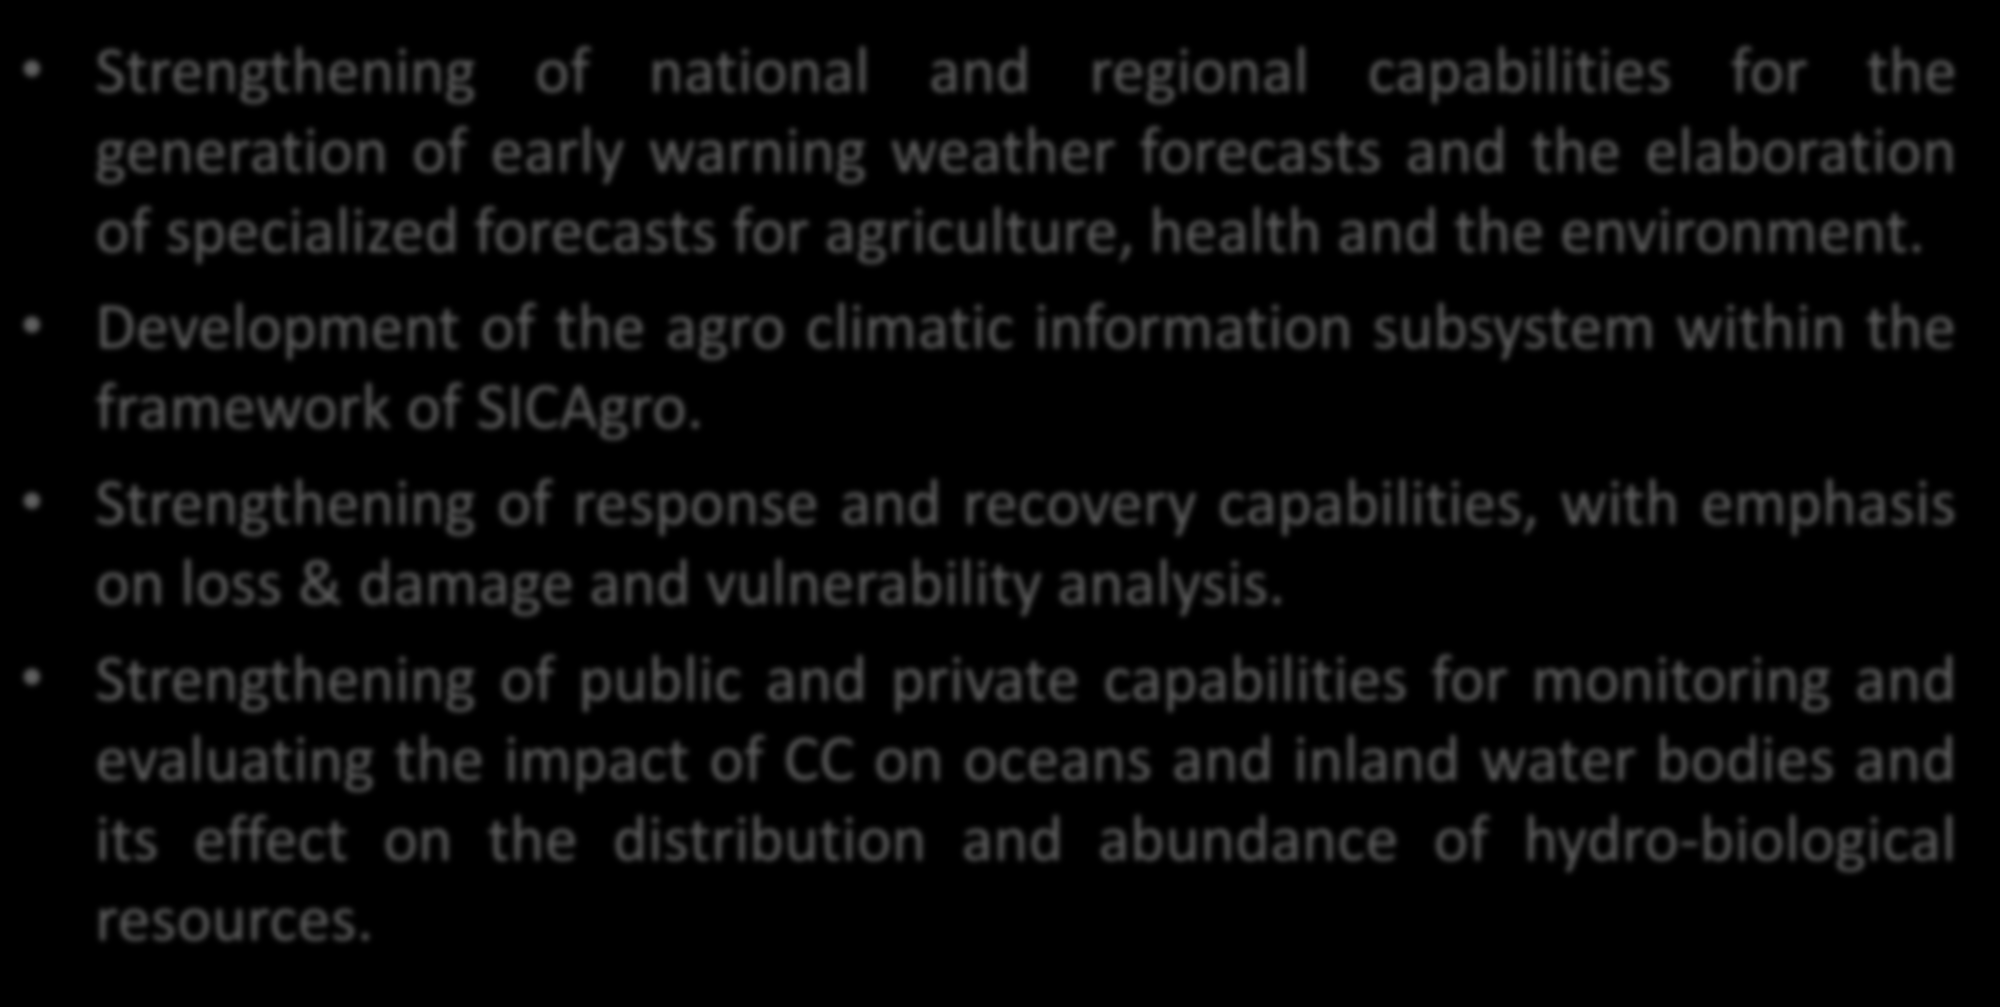 Water & Food Nutrition Security guidelines within regional instruments Strengthening of national and regional capabilities for the generation of early warning weather forecasts and the elaboration of